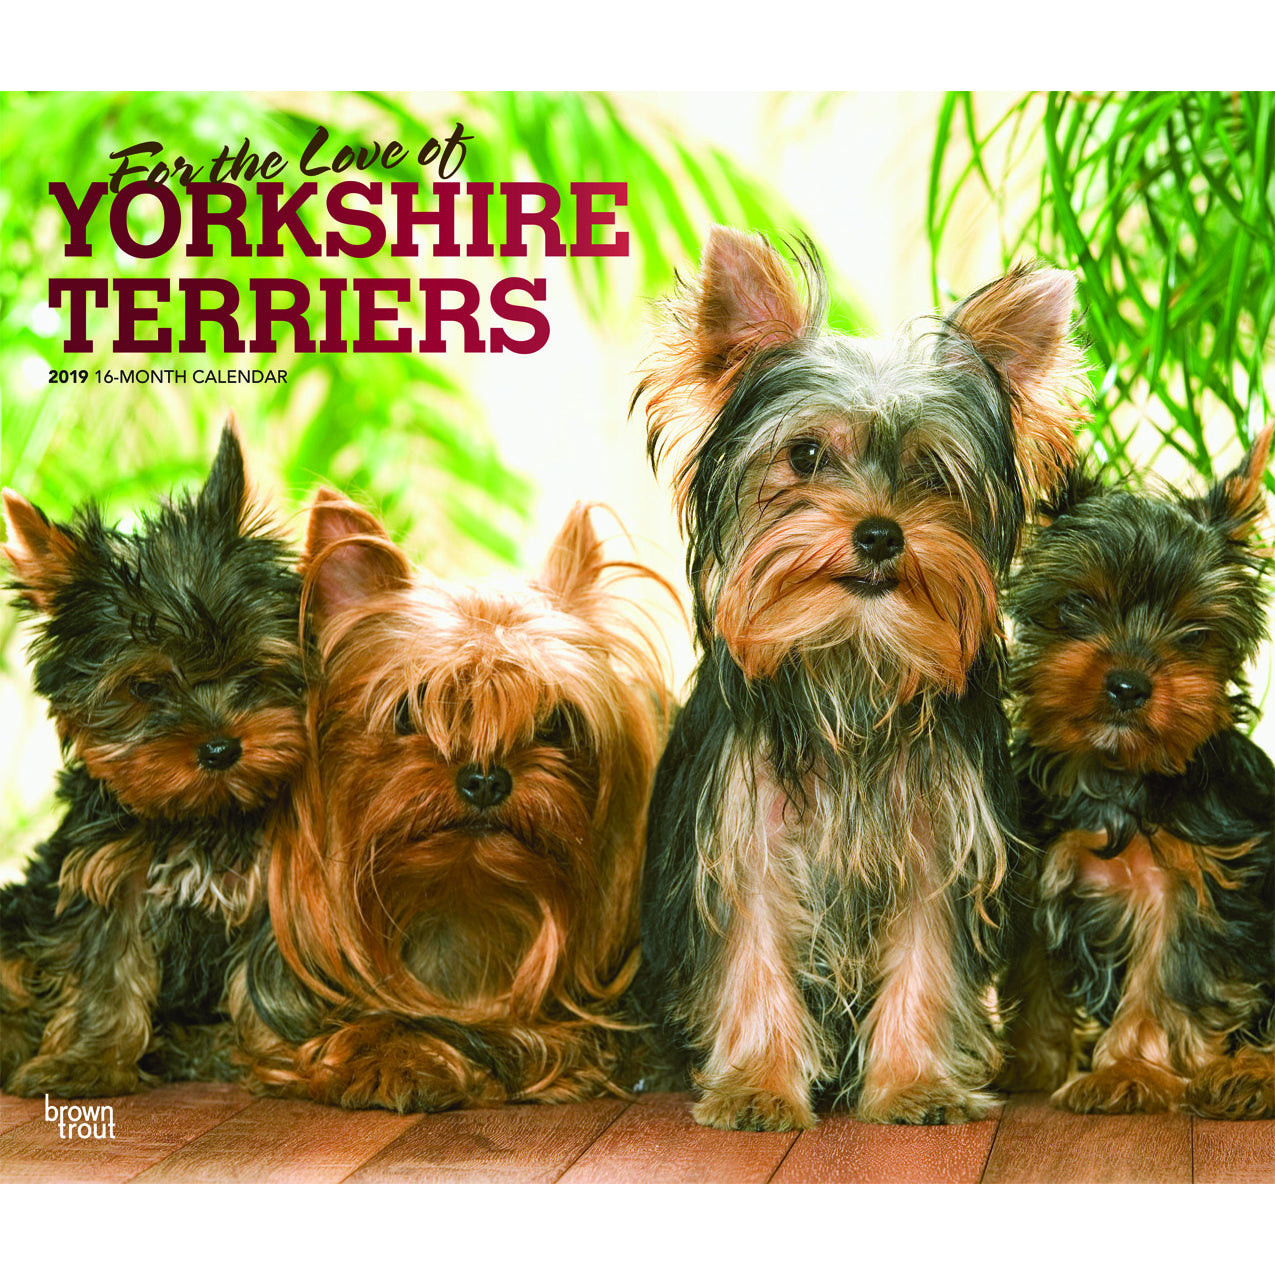 For The Love Of Yorkshire Terriers 2019 Deluxe Wall Calendar